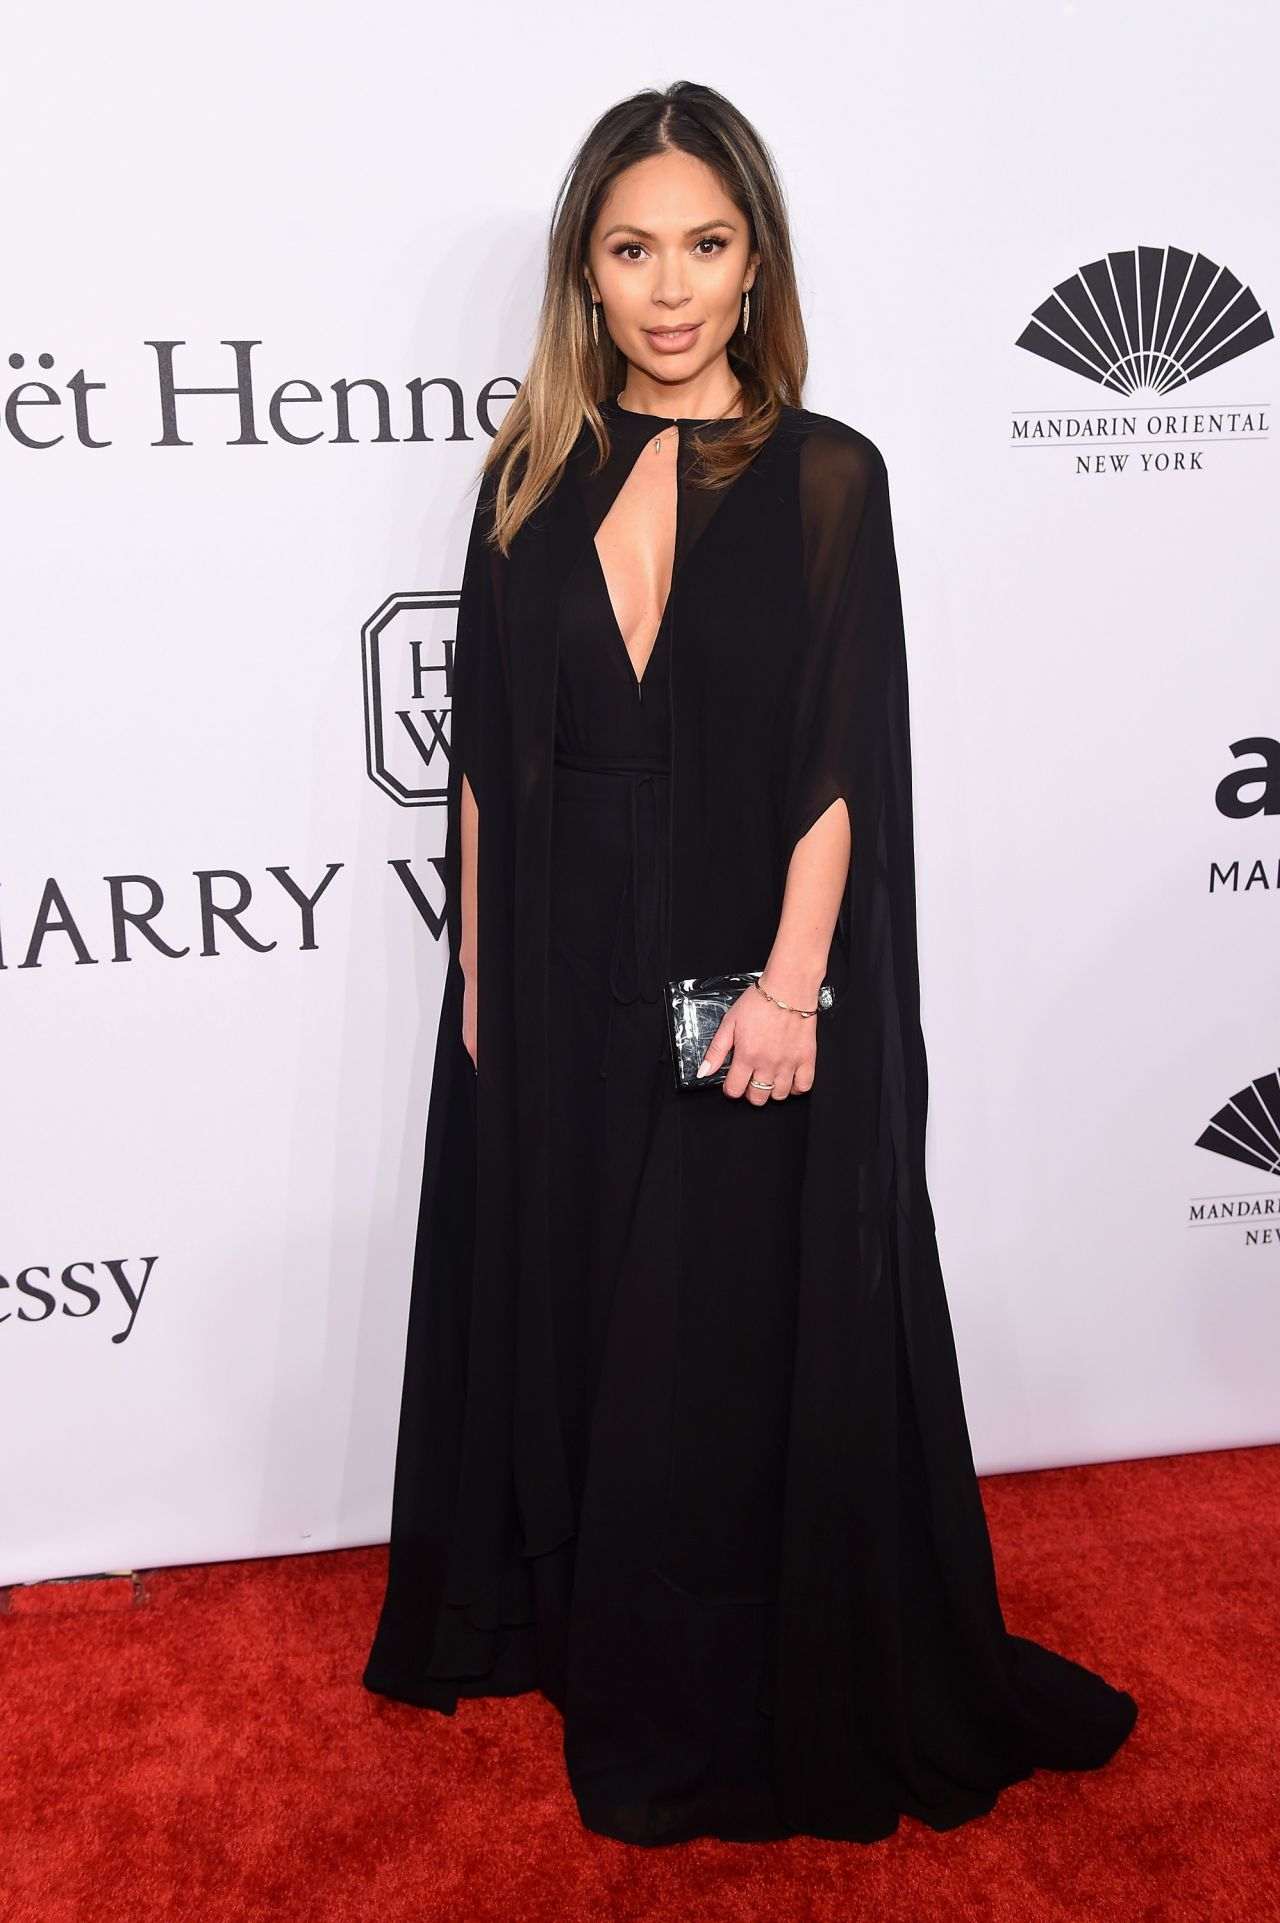 marianna-hewitt-2016-amfar-new-york-gala-in-new-york-city-ny-1